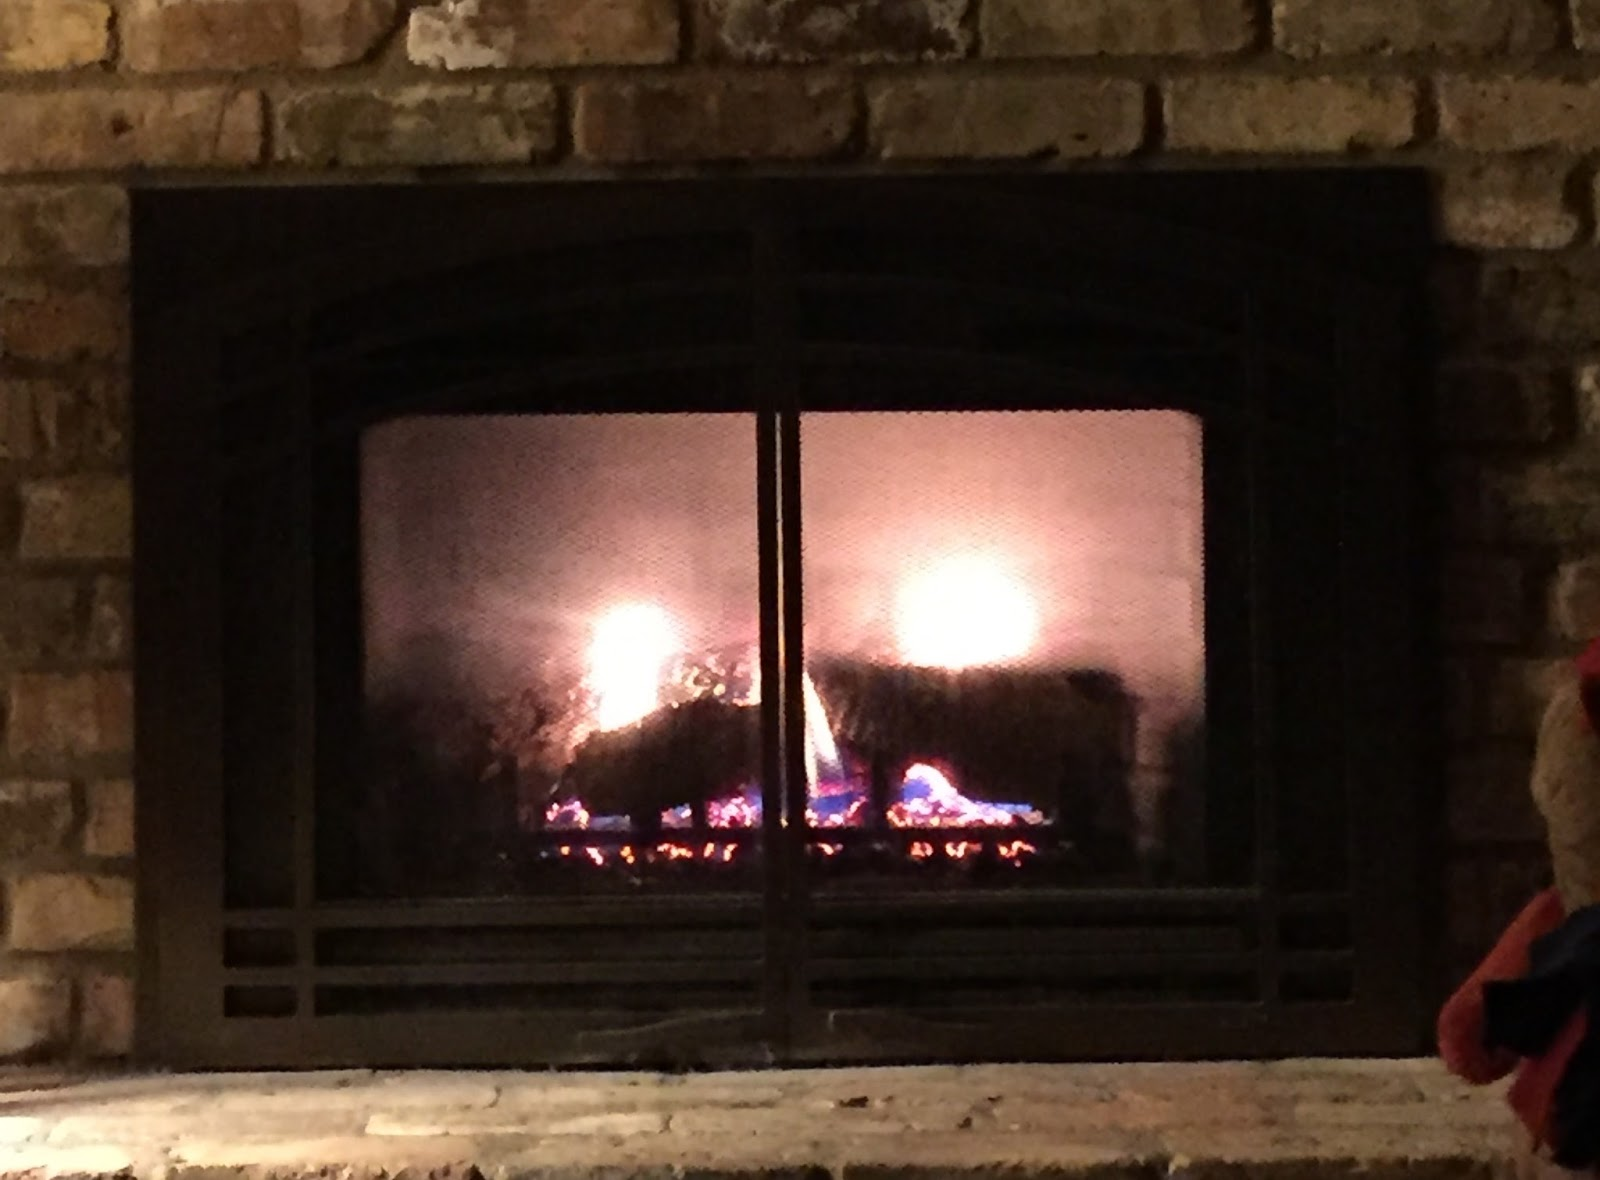 joy2day a fire in the fireplace on a cold winter day